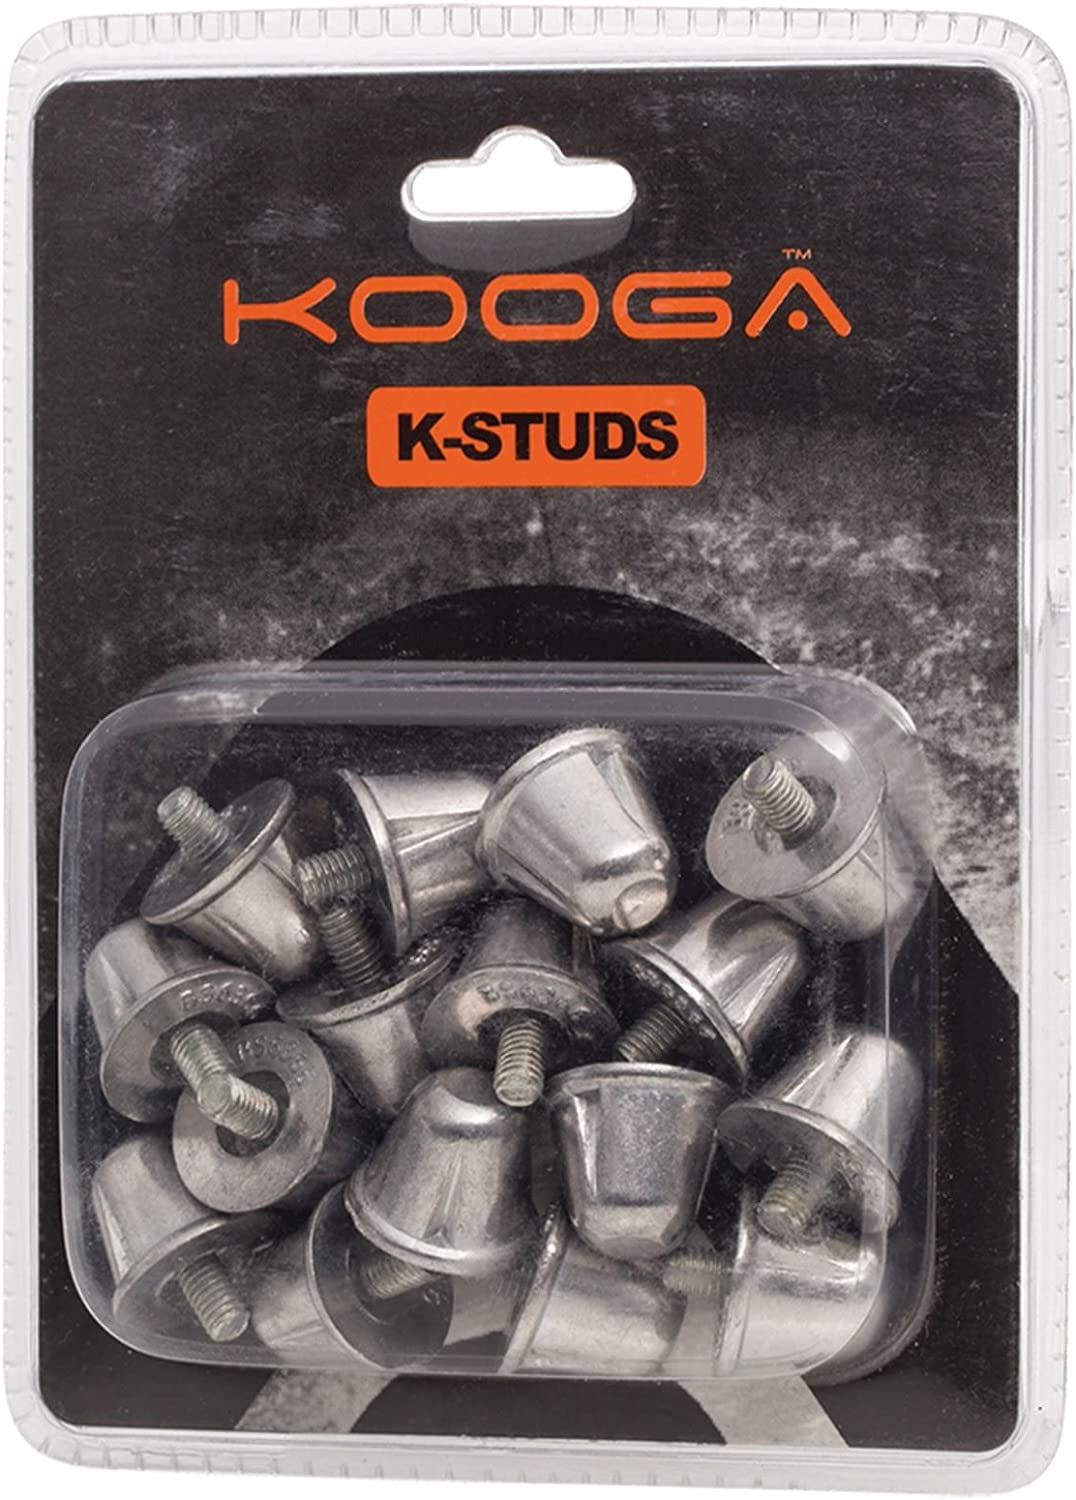 Kooga Rugby Boots K Studs Pack Of 16 Silver Amazon Co Uk Sports Outdoors